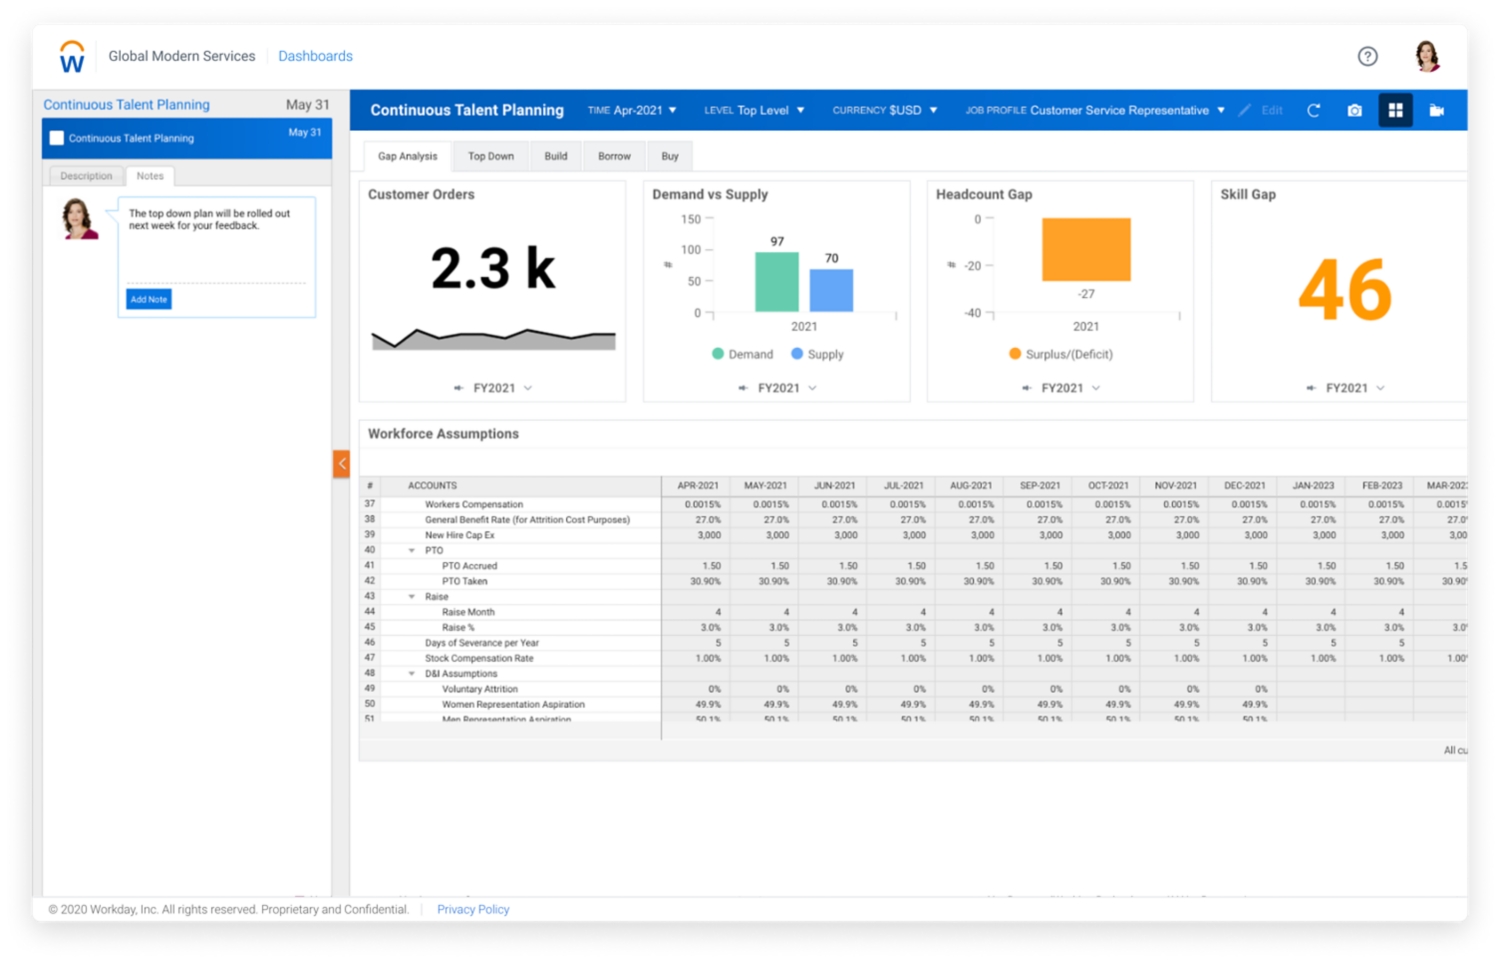 Workday Adaptive Planning dashboard showing Continuous Talent Planning GAP analysis.